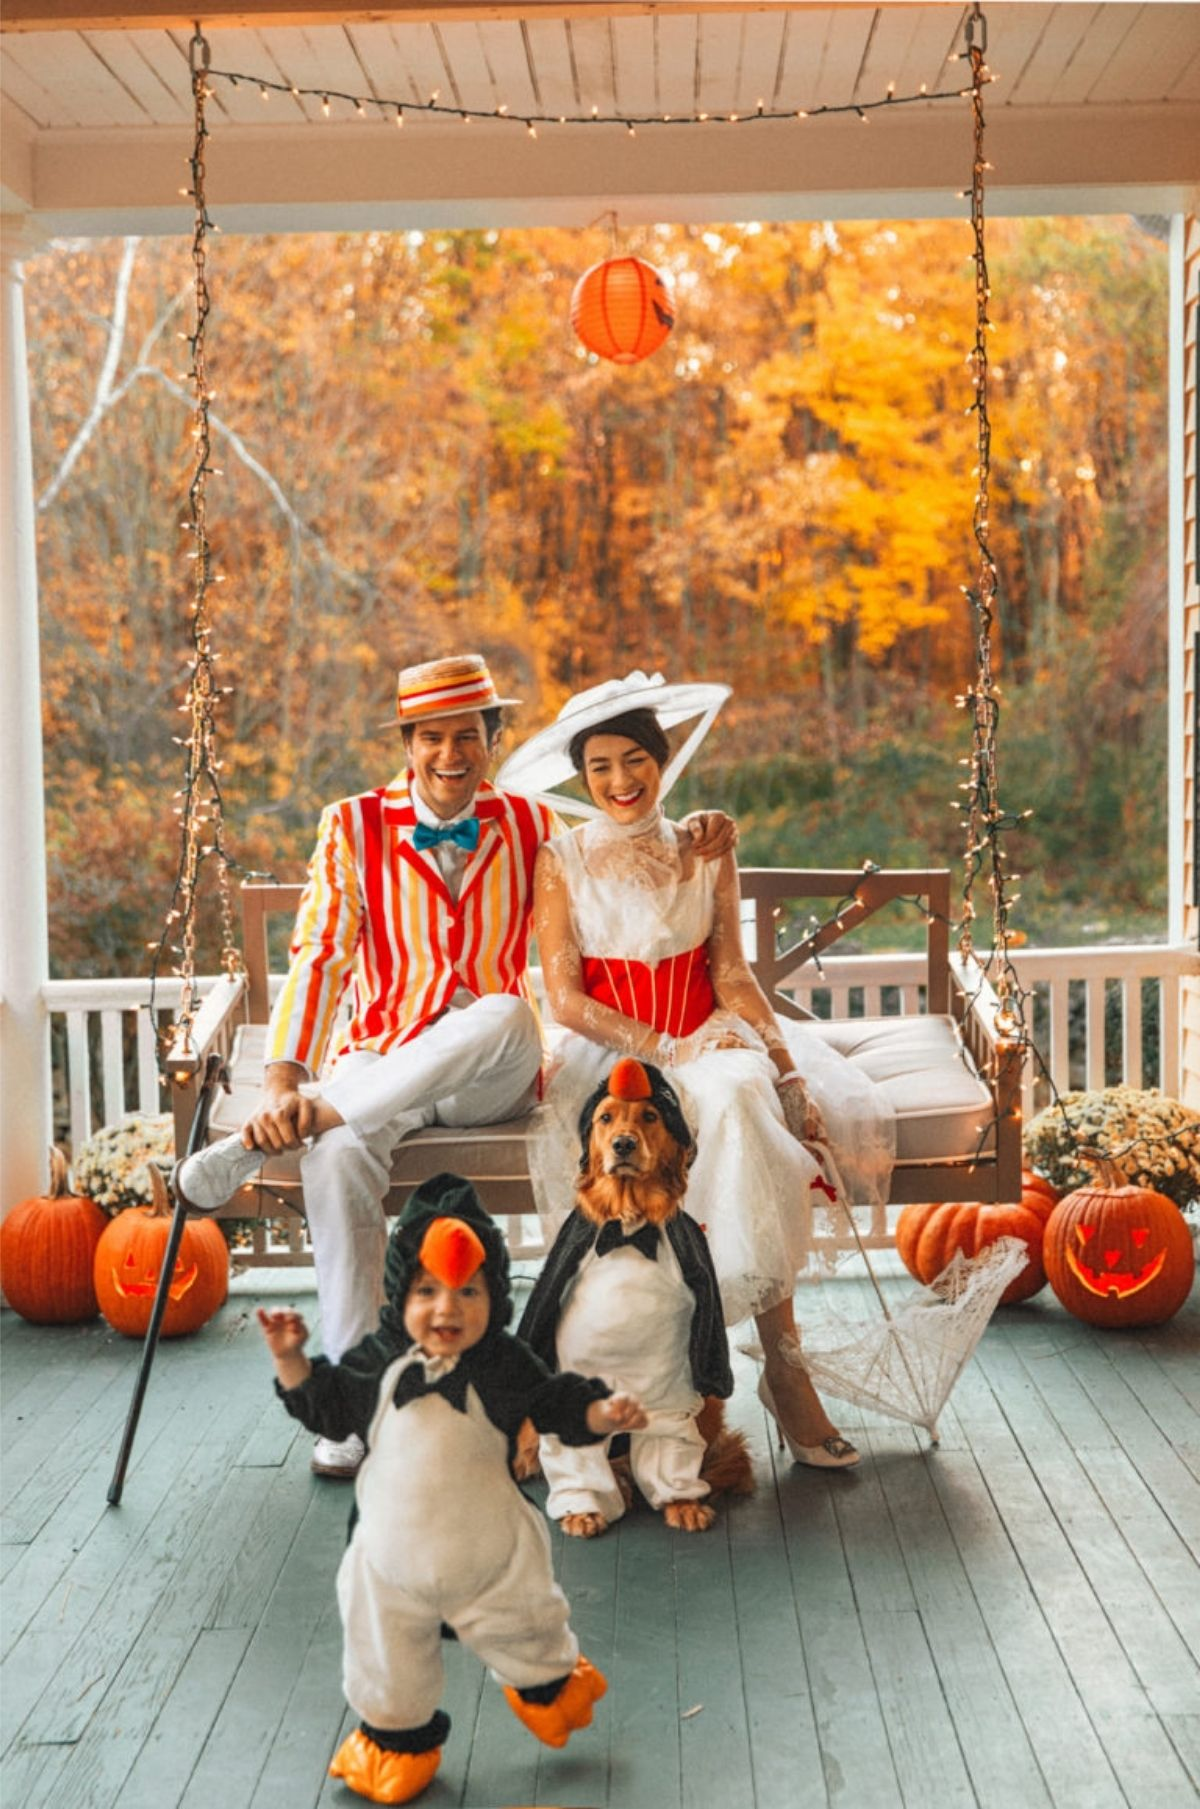 Mary Poppins, Bert, and penguin costumes